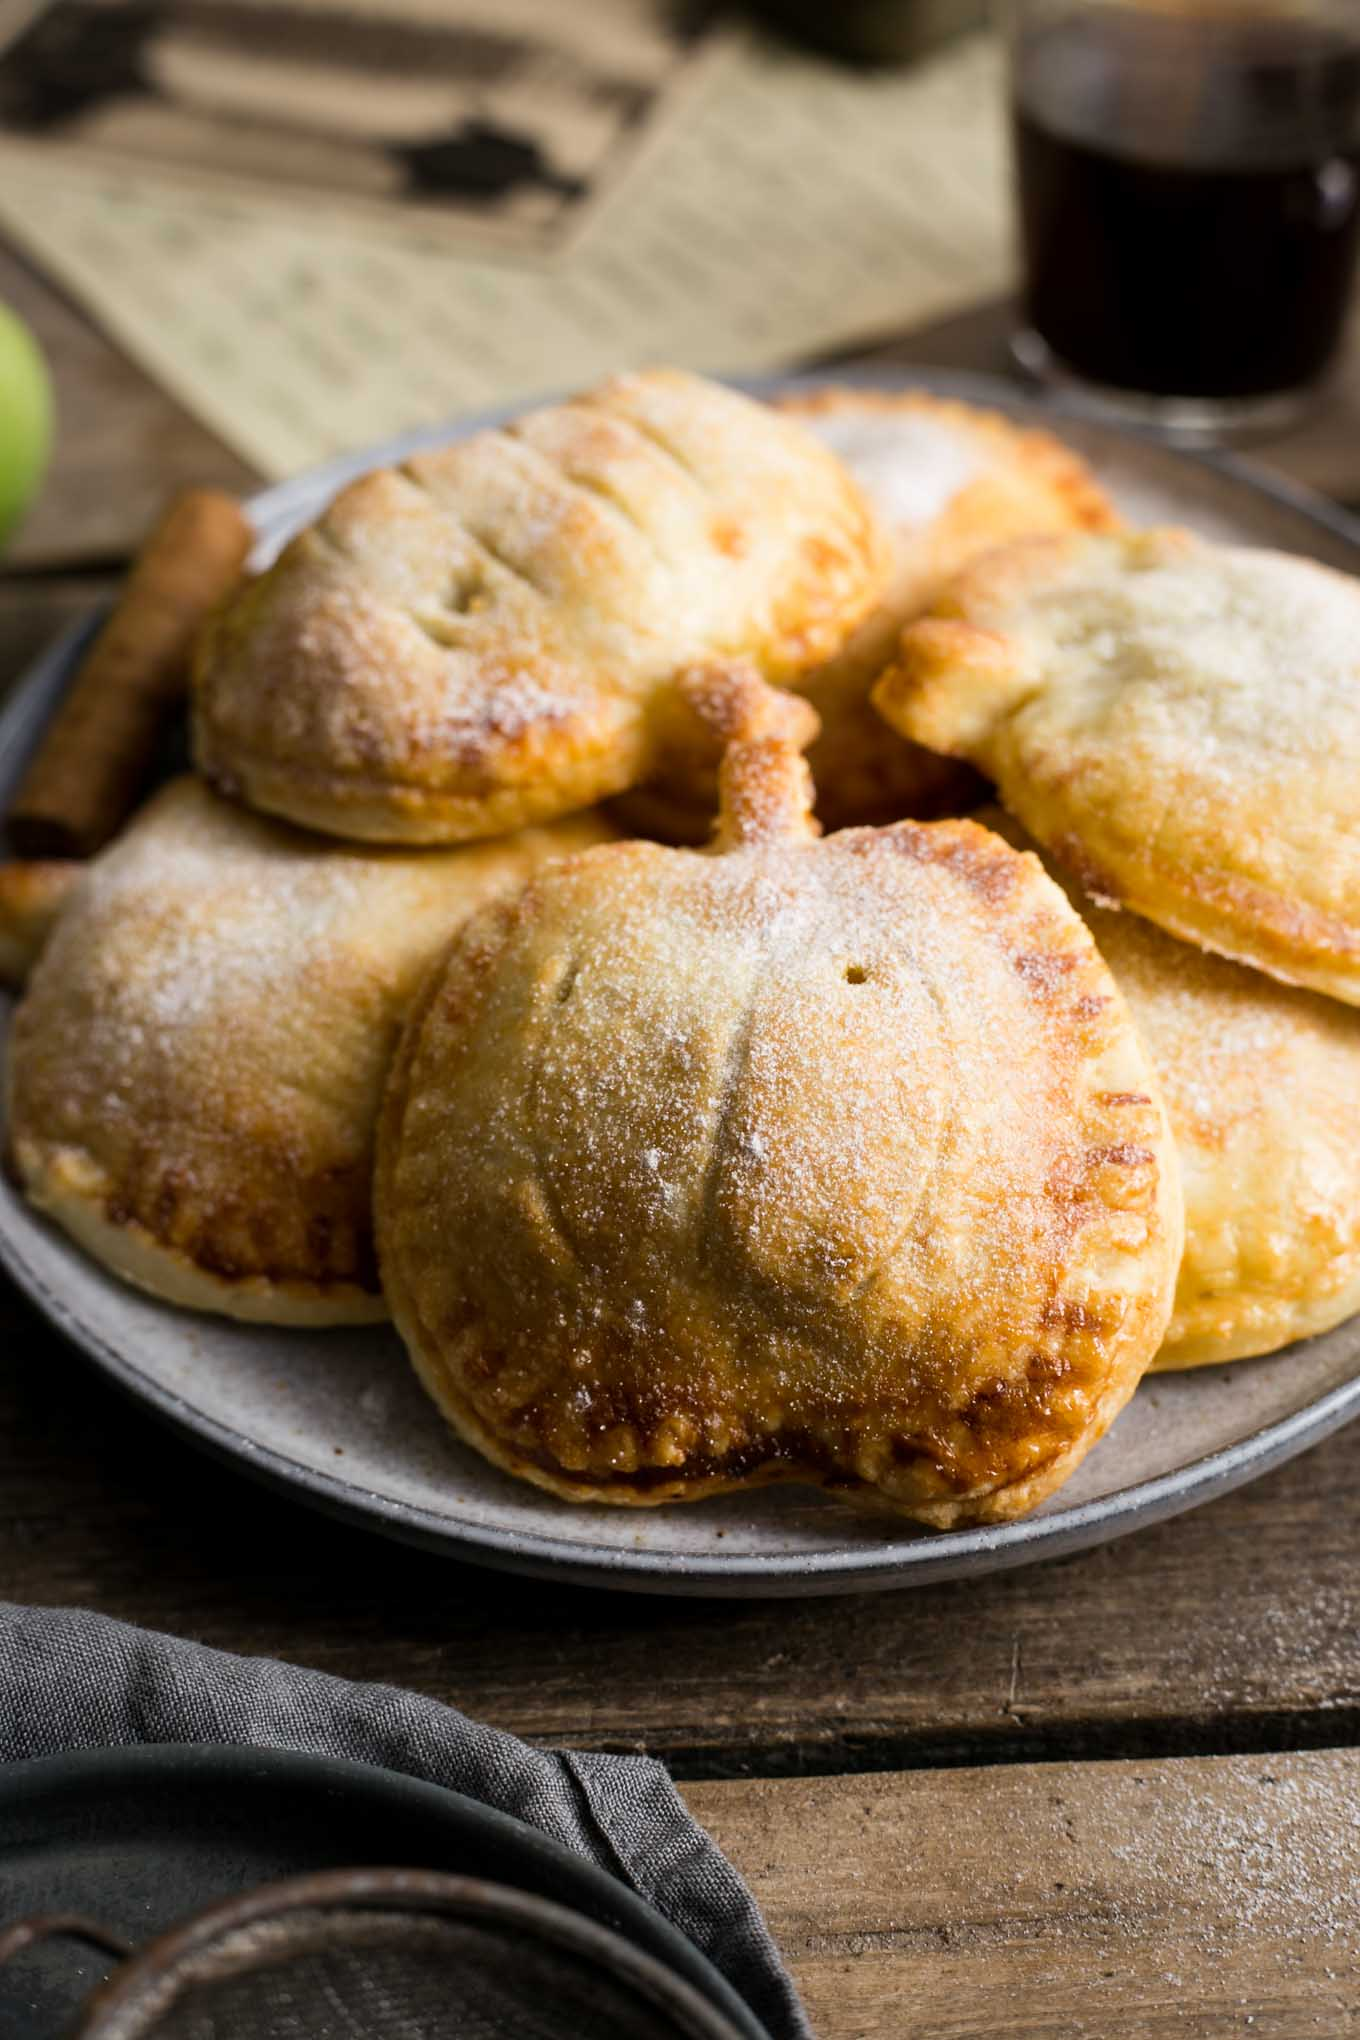 Totally delicious and easy recipe for spiced apple and pumpkin hand pies #vegan #pumpkinpie | via @annabanana.co